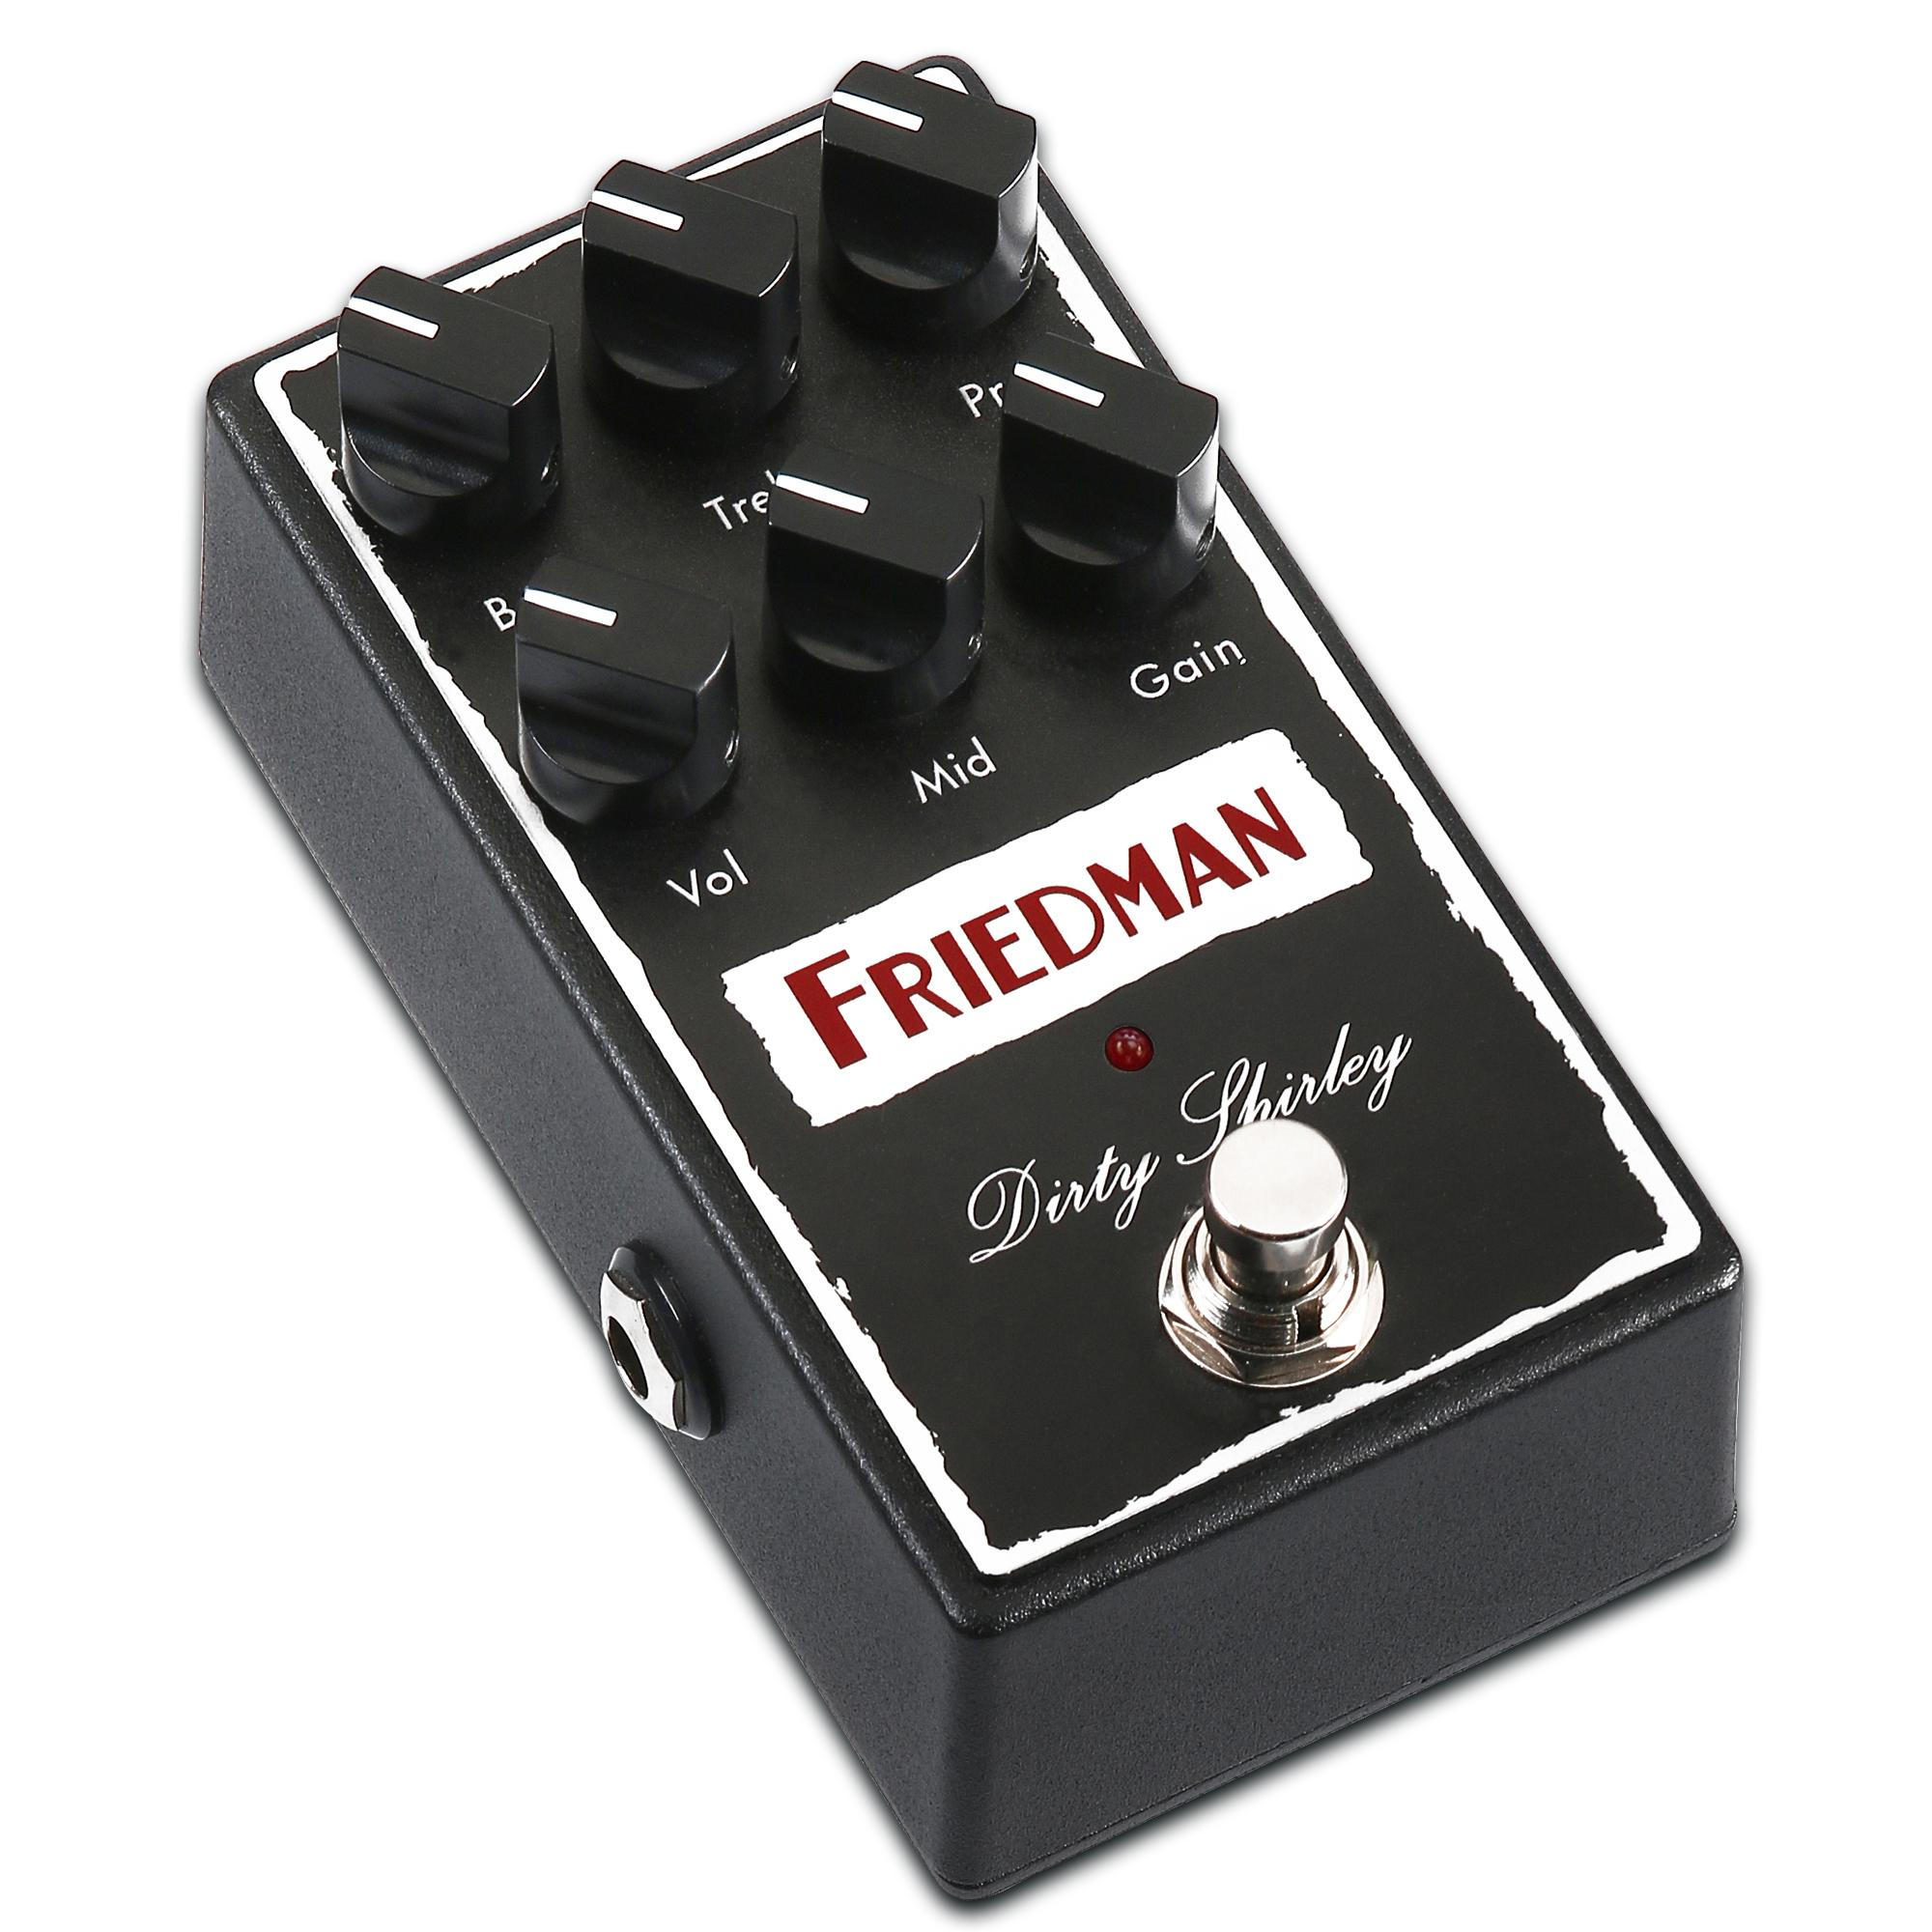 friedman amplification dirty shirley overdrive guitar effects pedal musical instruments. Black Bedroom Furniture Sets. Home Design Ideas